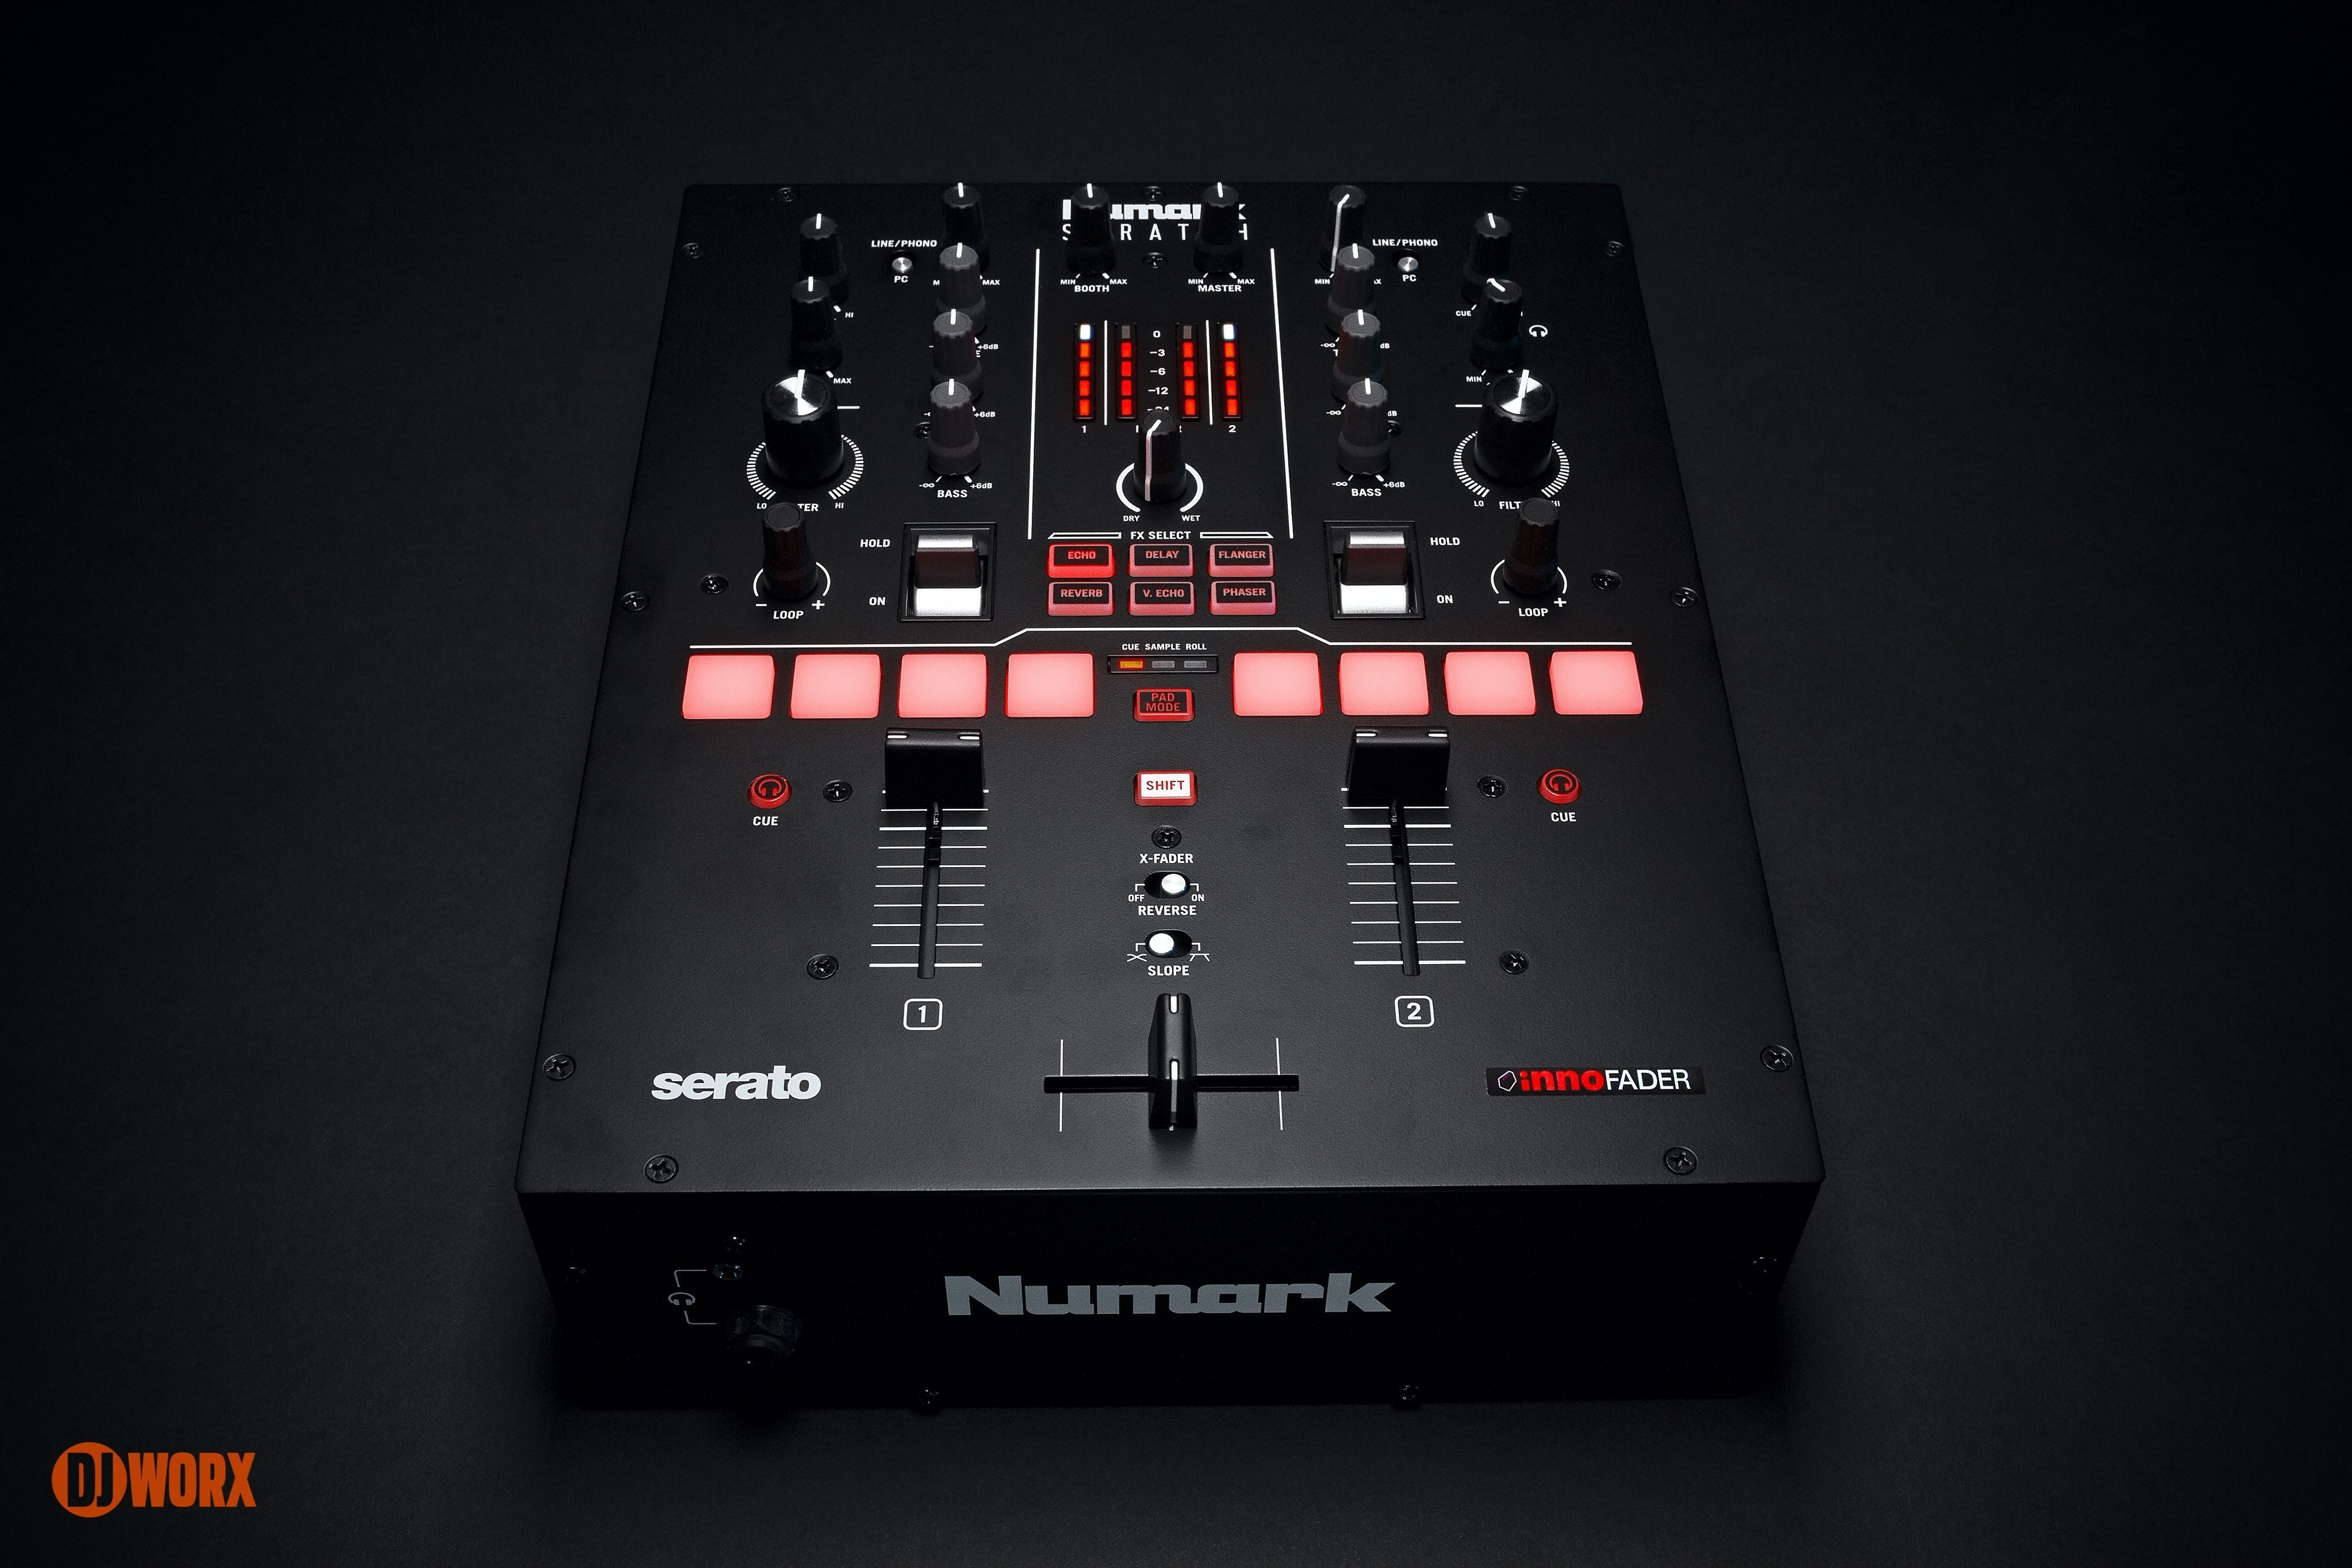 DJWORX on Tumblr — New Post has been published on